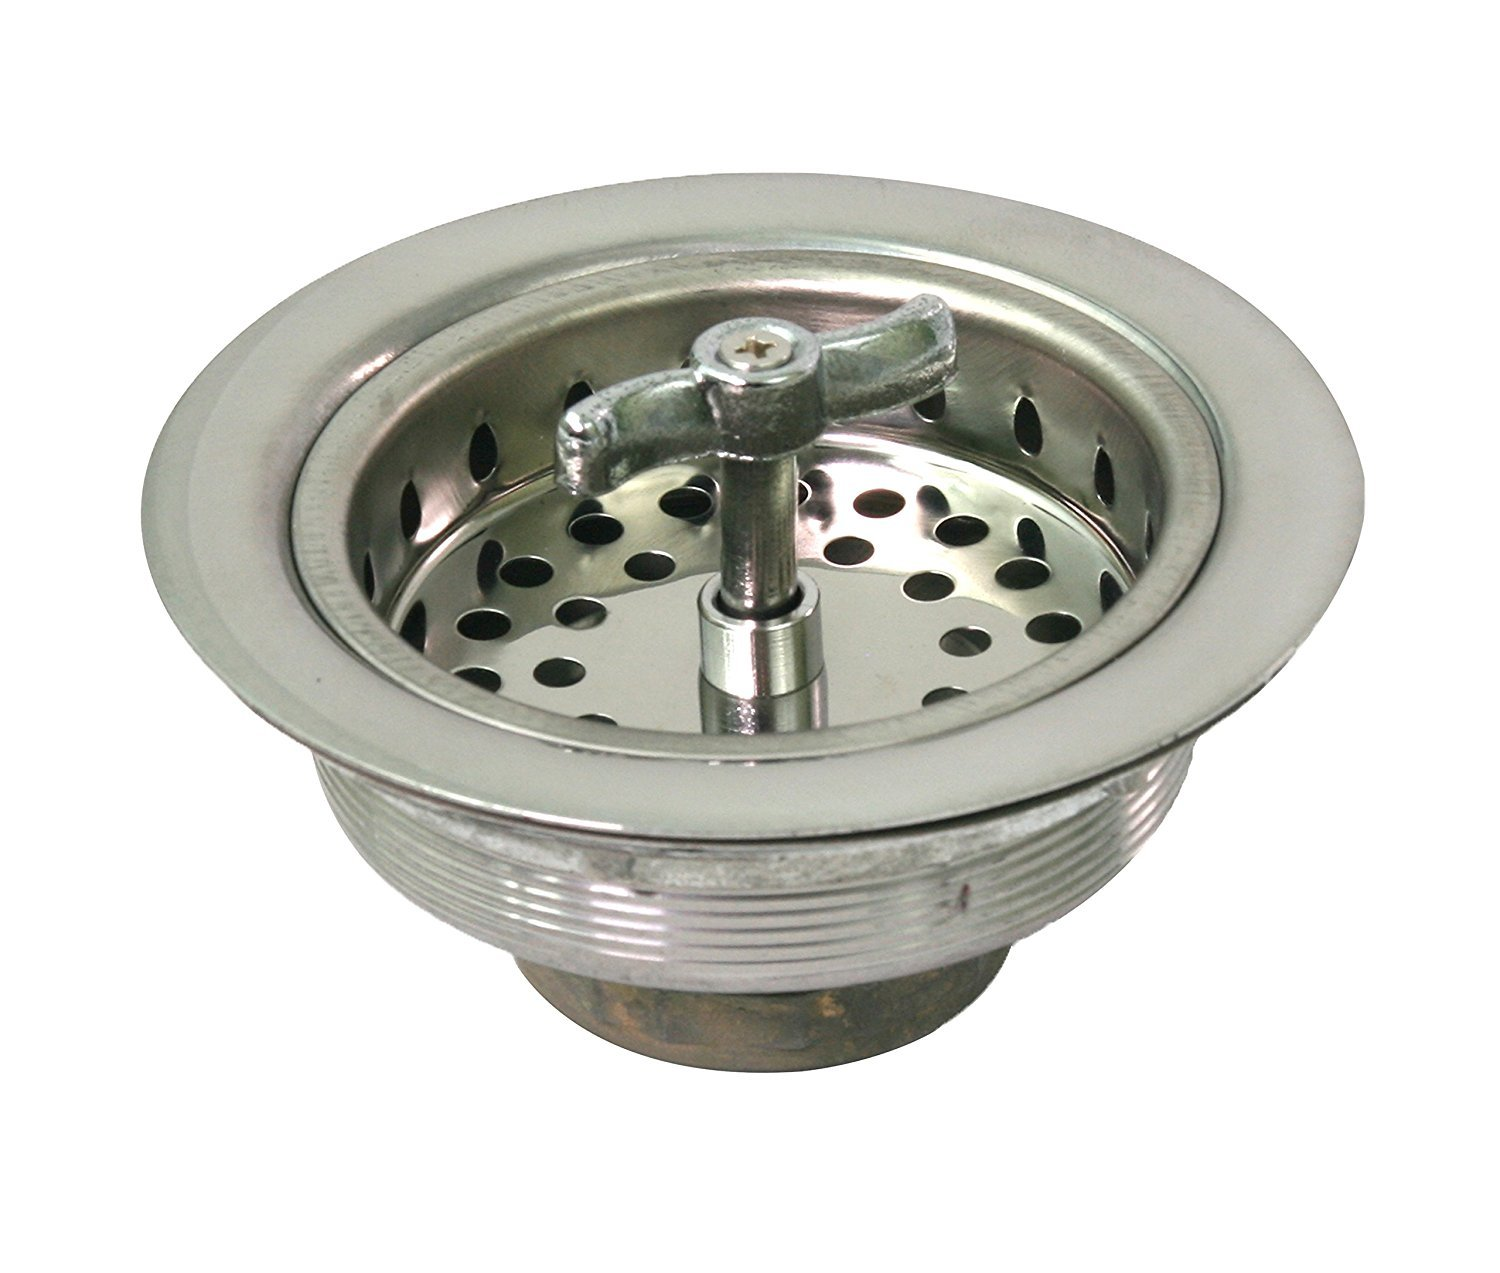 Everflow 7541 Kitchen Sink (3-1/2 Inch) Stainless Steel Drain Assembly With Strainer Basket - Spin and Seal With Threaded Stopper